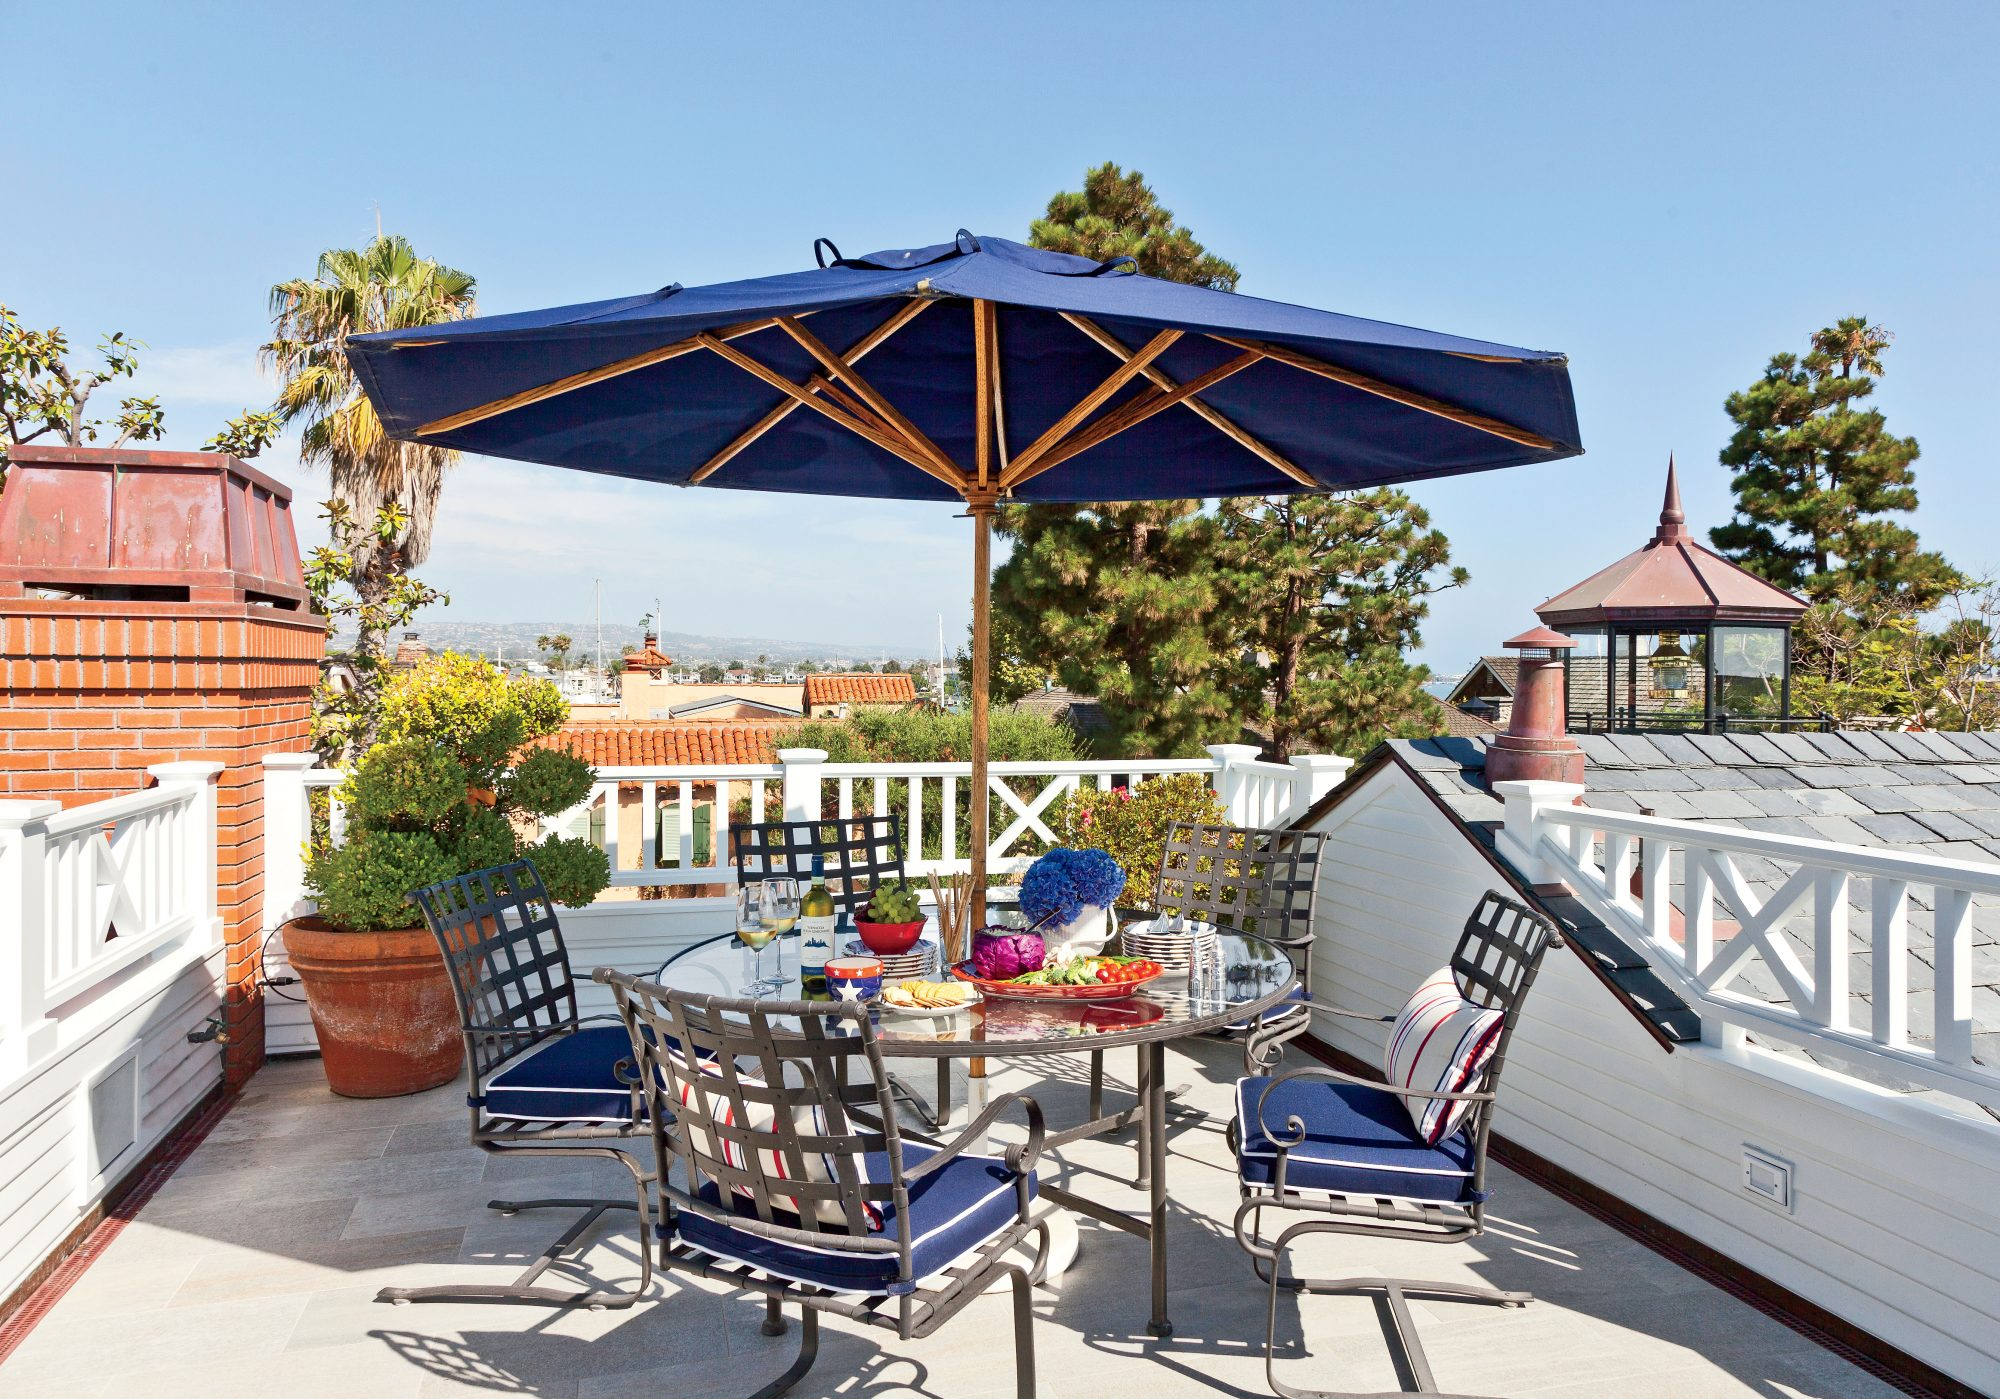 This sun-drenched rooftop deck sits right next to a lantern room replica atop a lighthouse-inspired home in Newport Beach, California.